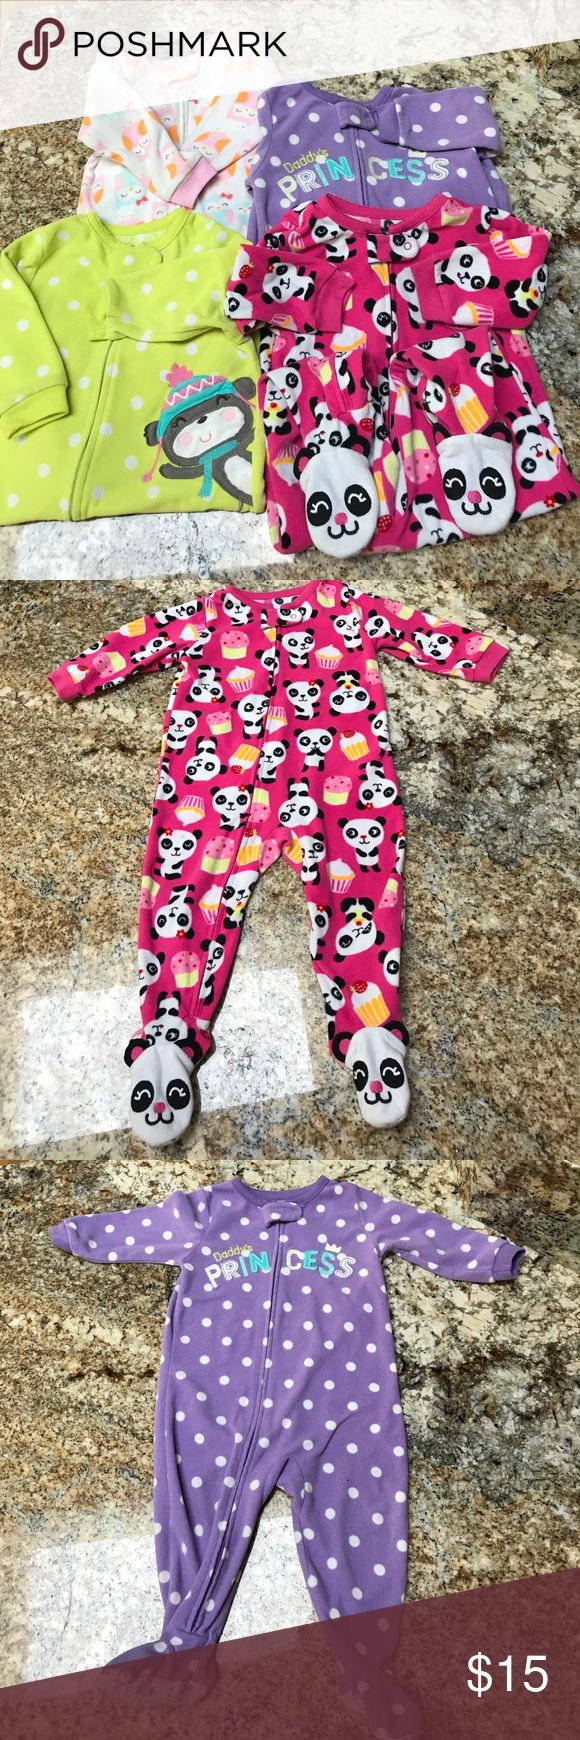 😴Carter's fleece pajama bundle. 4 piece bundle😴 Fleece pajamas are in good used condition. The owl set had a stain on the seat as pictured. Please let me know if you have any questions. I 💗 bundles❗️I even love to bundle my bundles with other bundles Carter's Pajamas